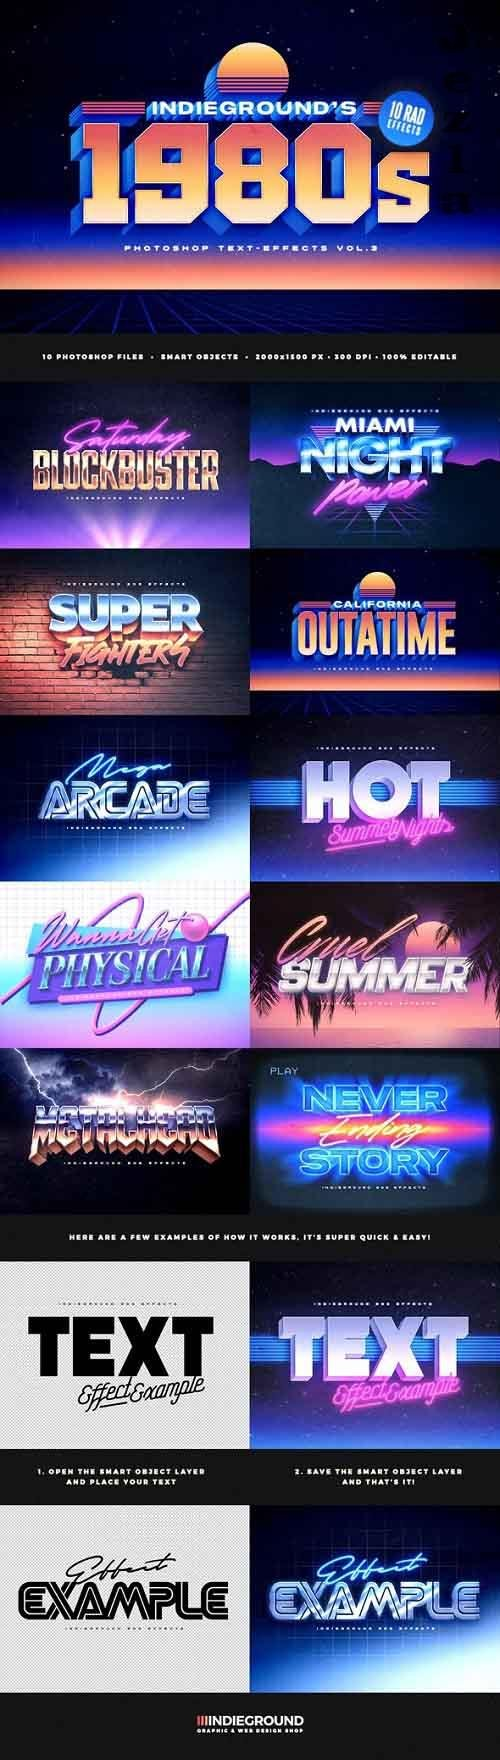 80s Text Effects Vol.3 - 28419092 - 5353481